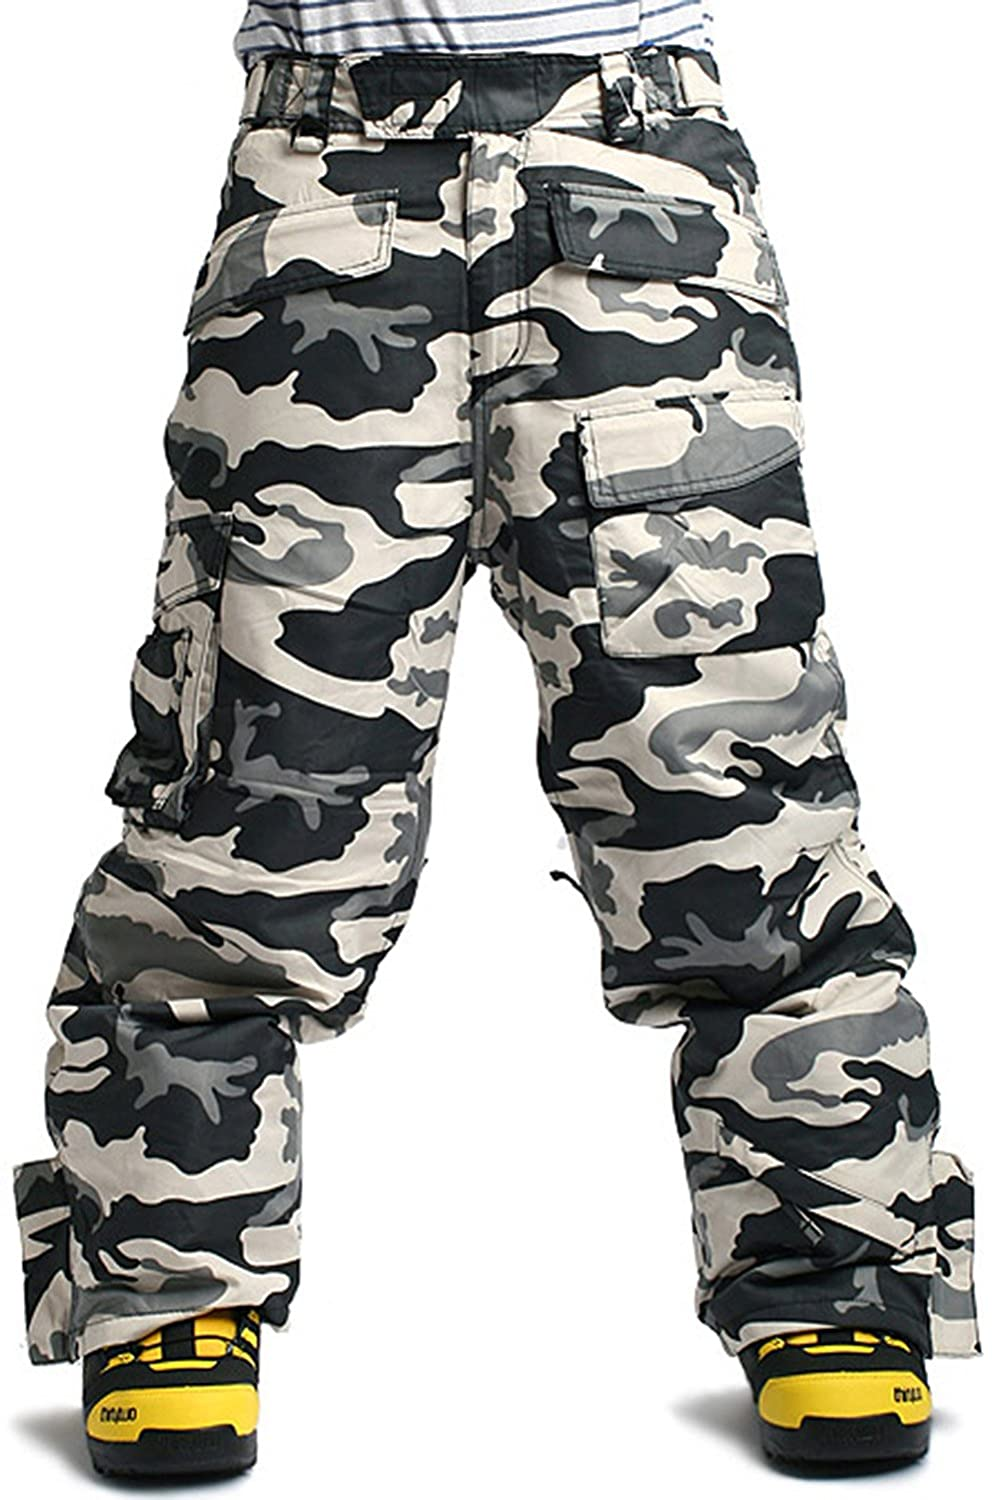 SOUTH PLAY Mens Premium Waterproof Ski SnowBoard Wear Pants Trousers CAMO